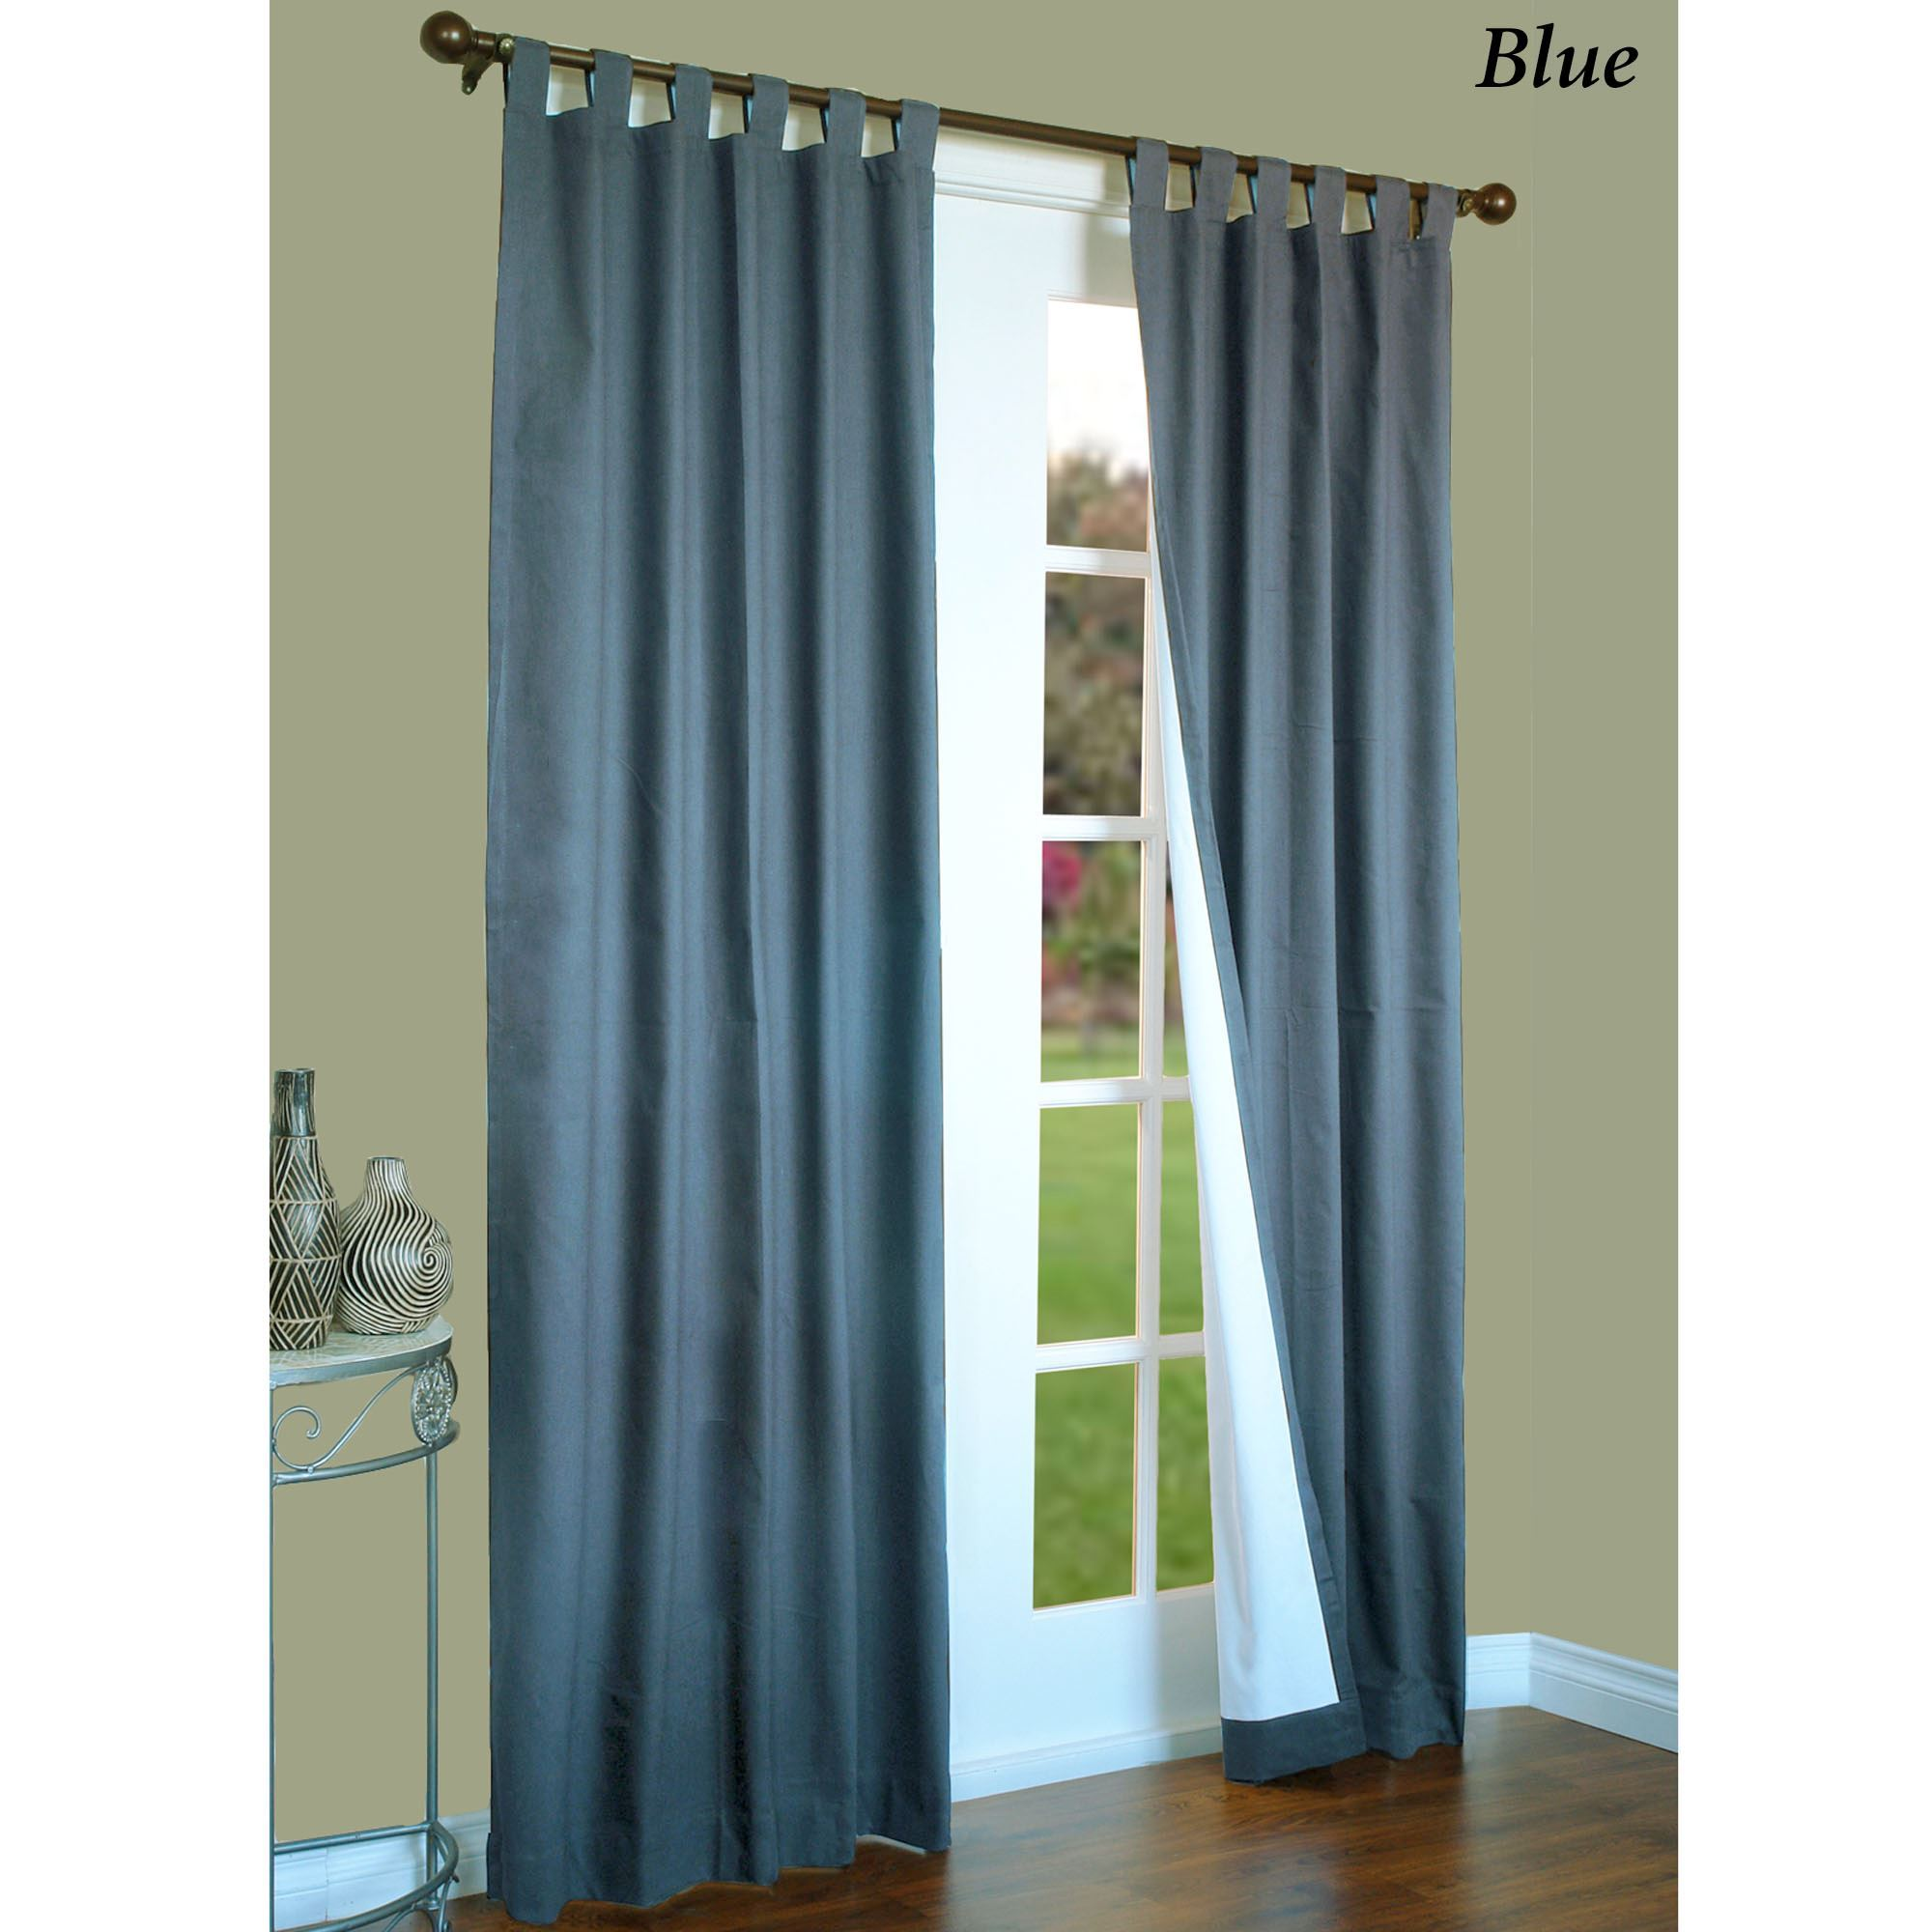 of patio door for best drapes curtains less amp voile nature fresh doors